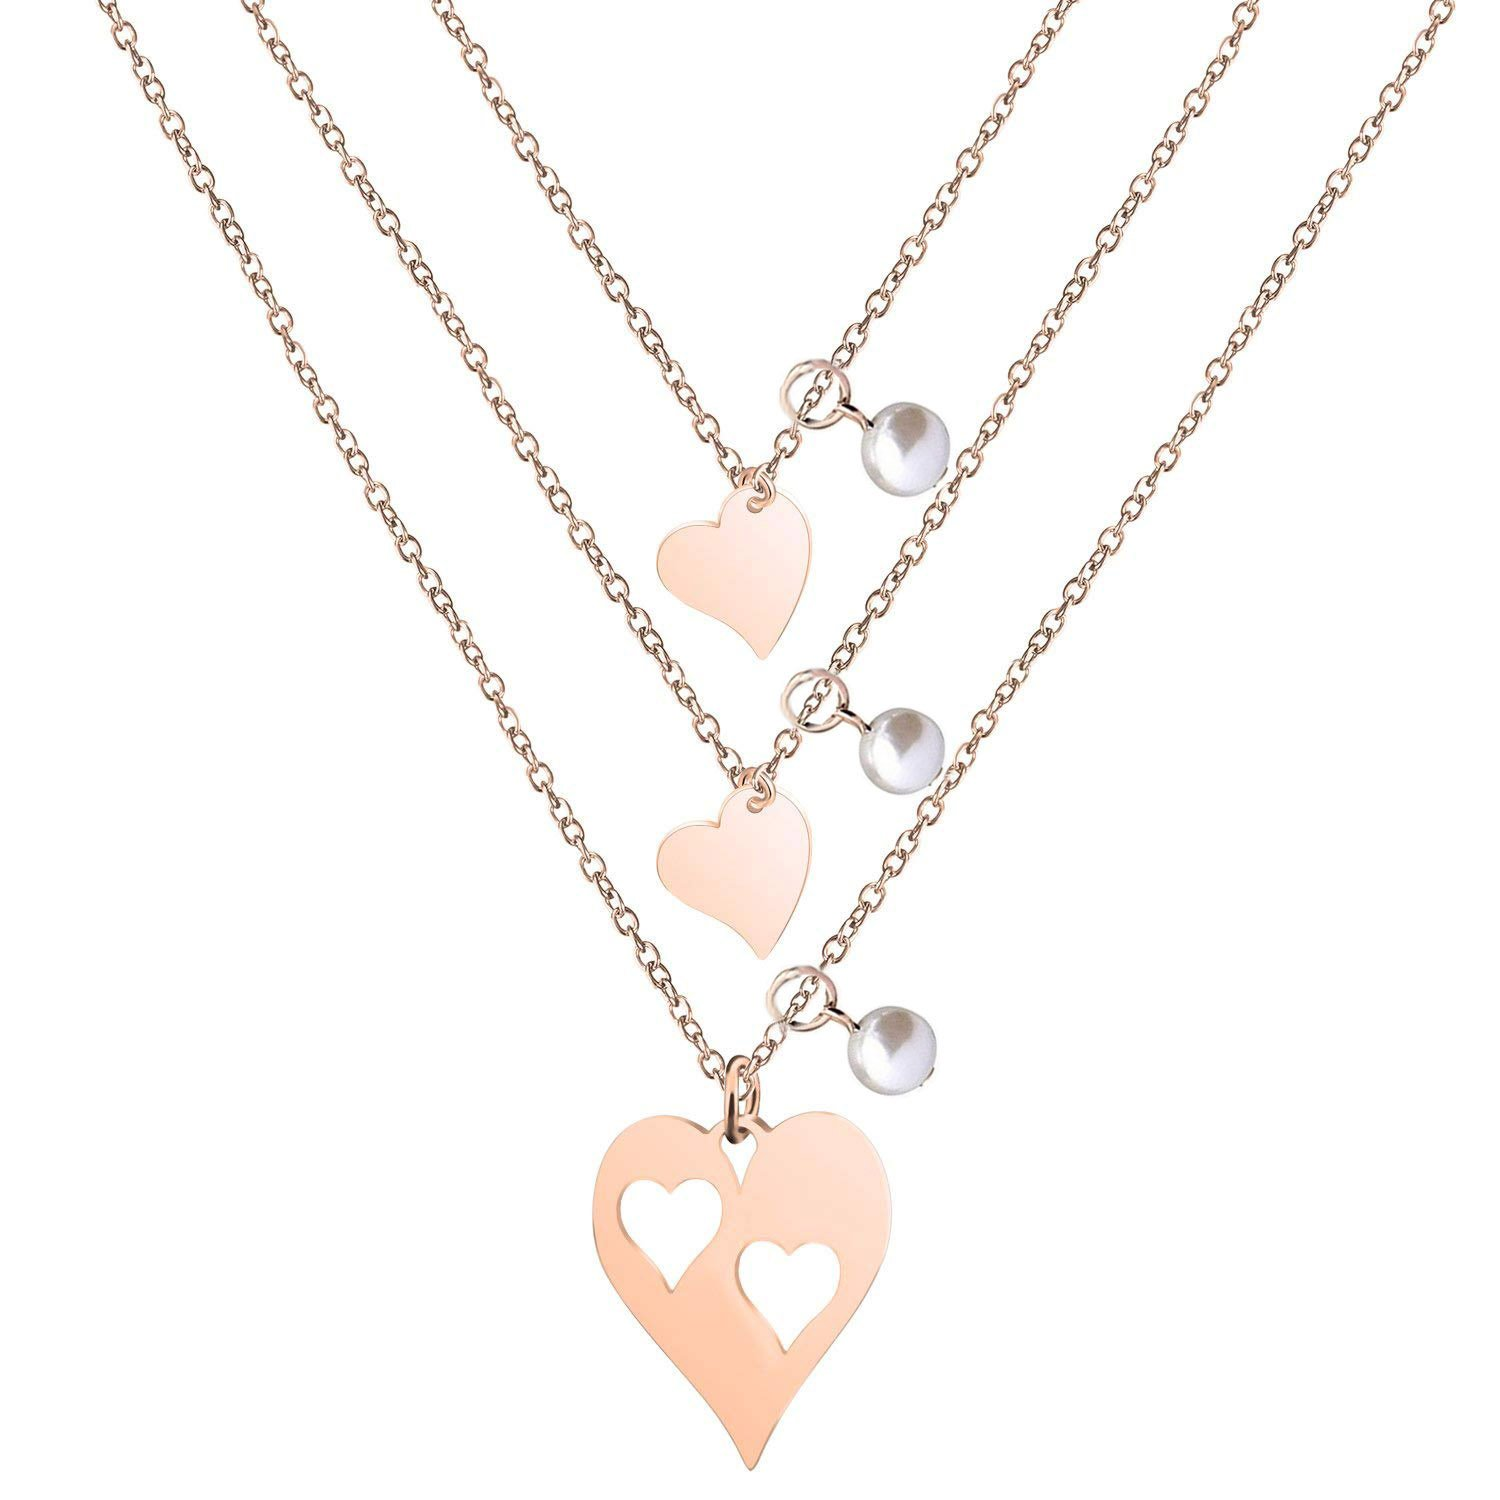 BNQL Rose Gold Mother Daughter Heart Cutout Necklace Set Pearl (Cutout 2 Heart Necklace)